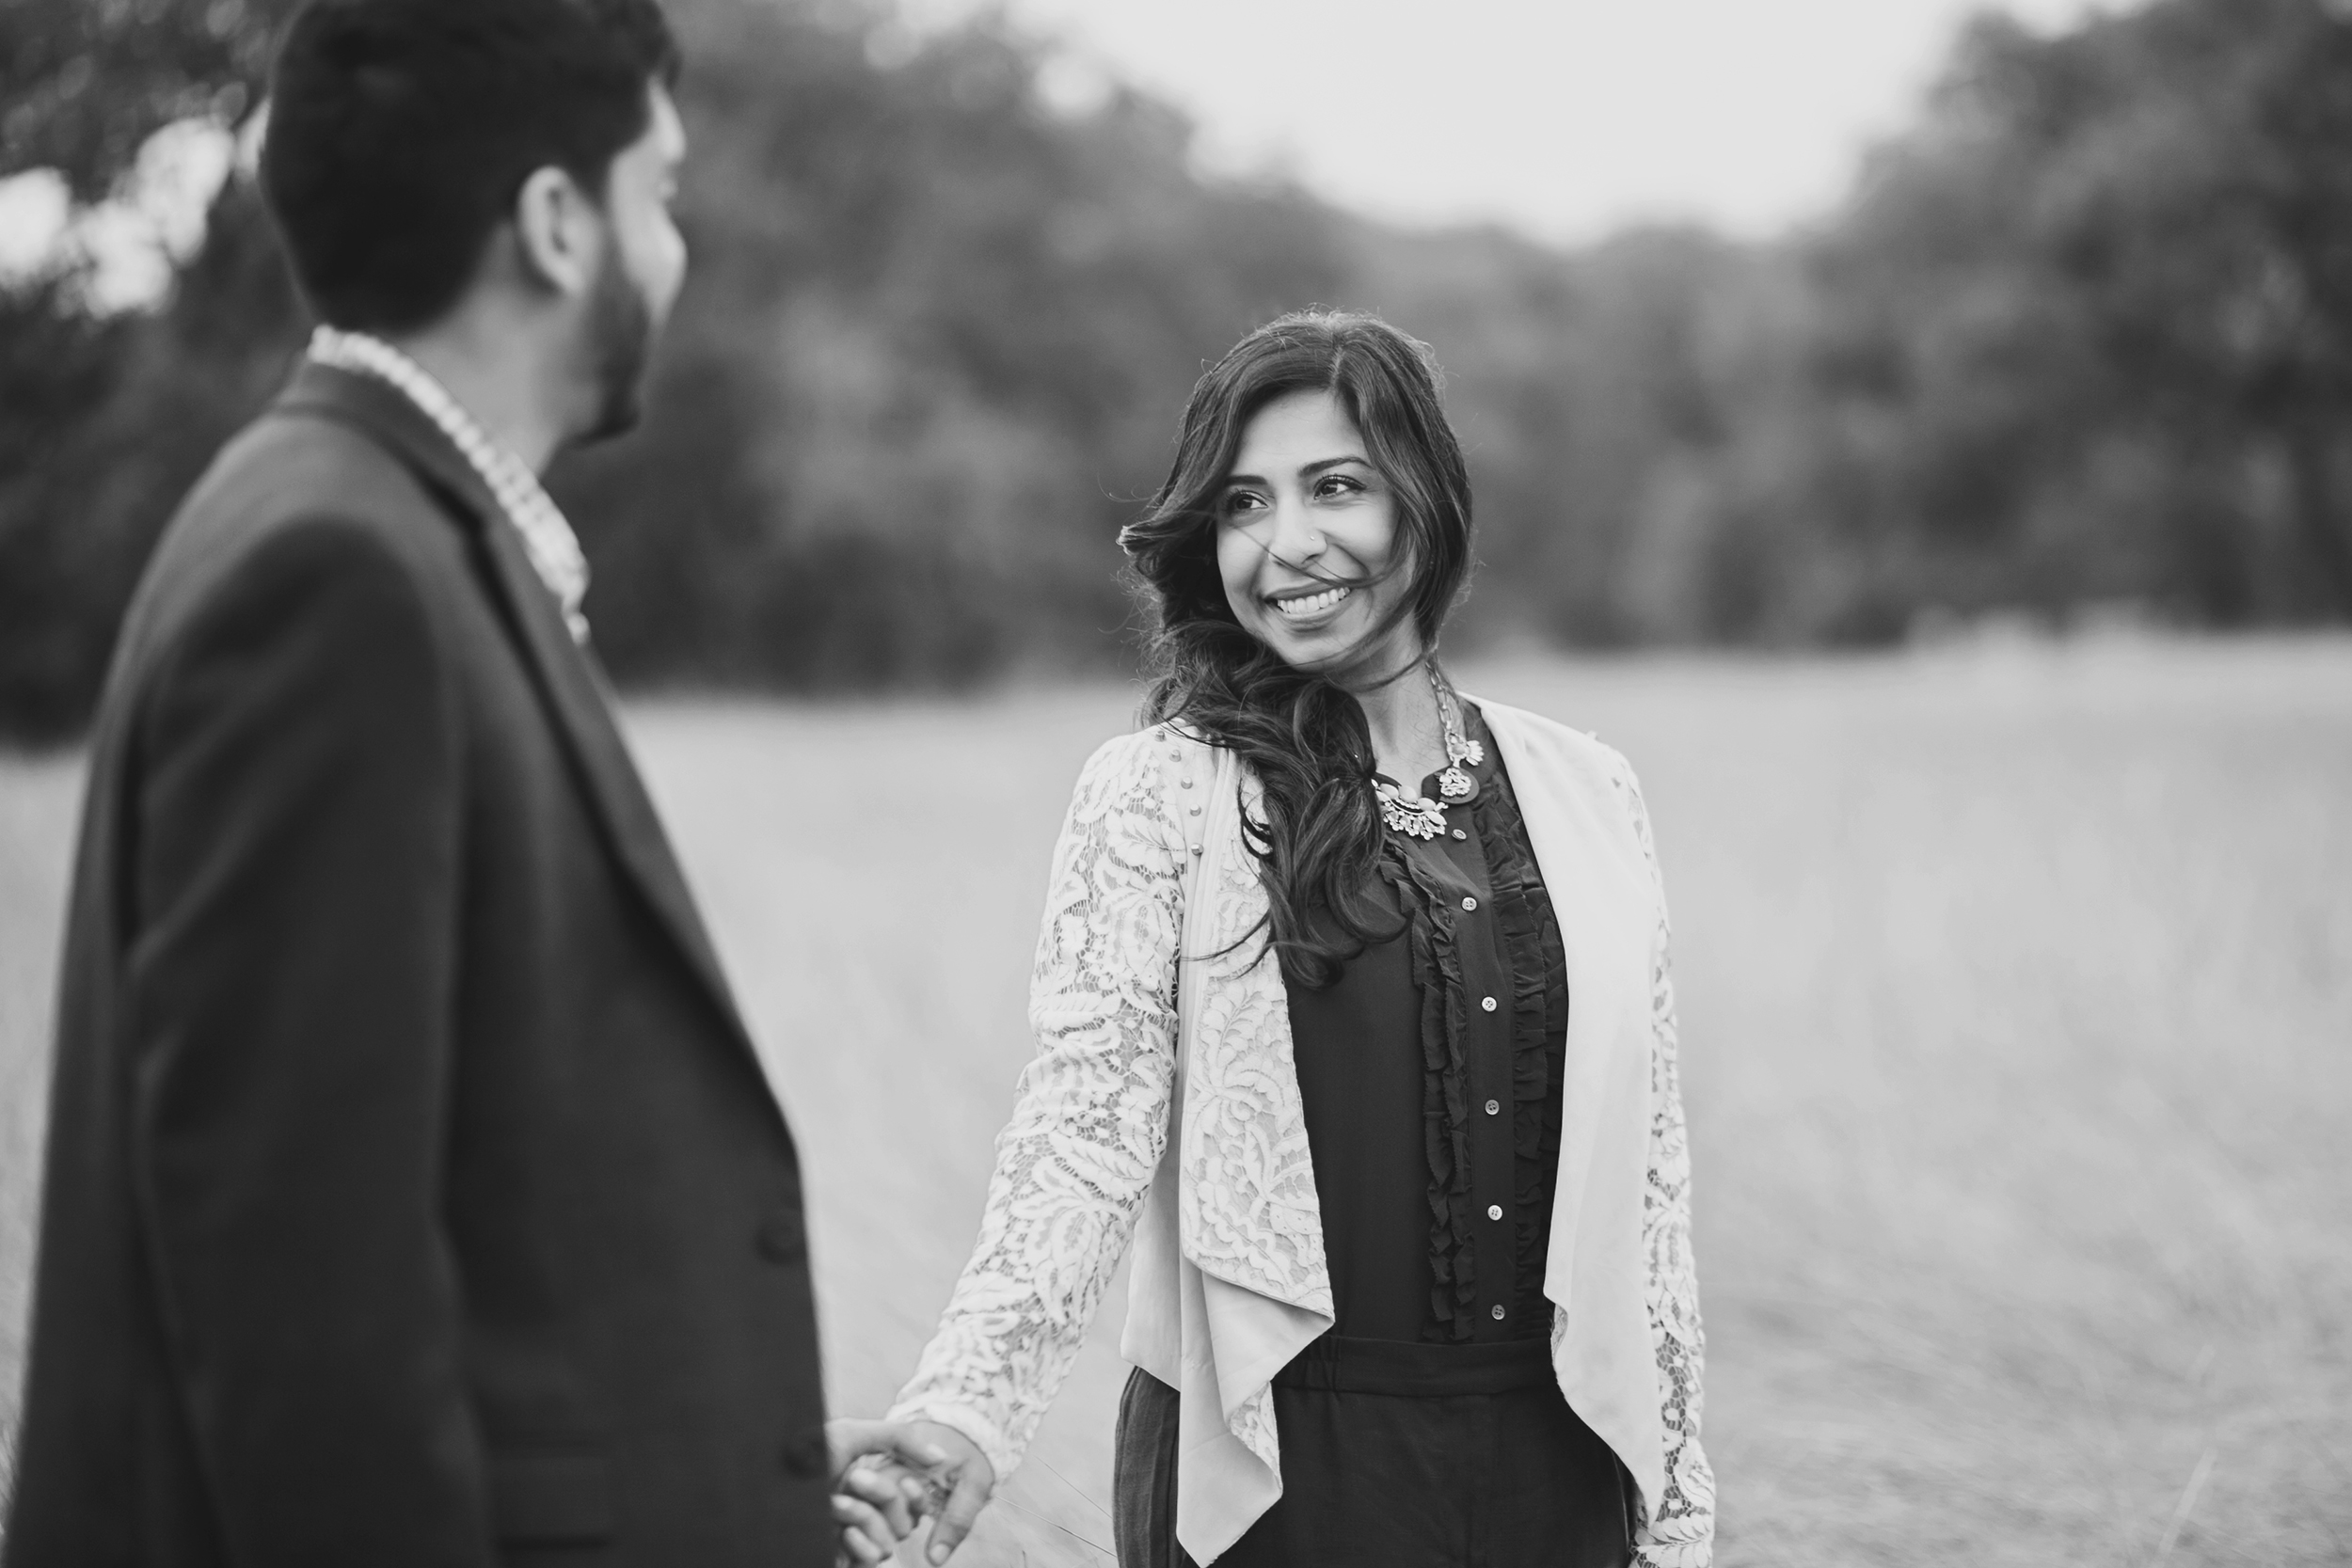 Austin_TX_Engagement_Photographer_KBP022.jpg